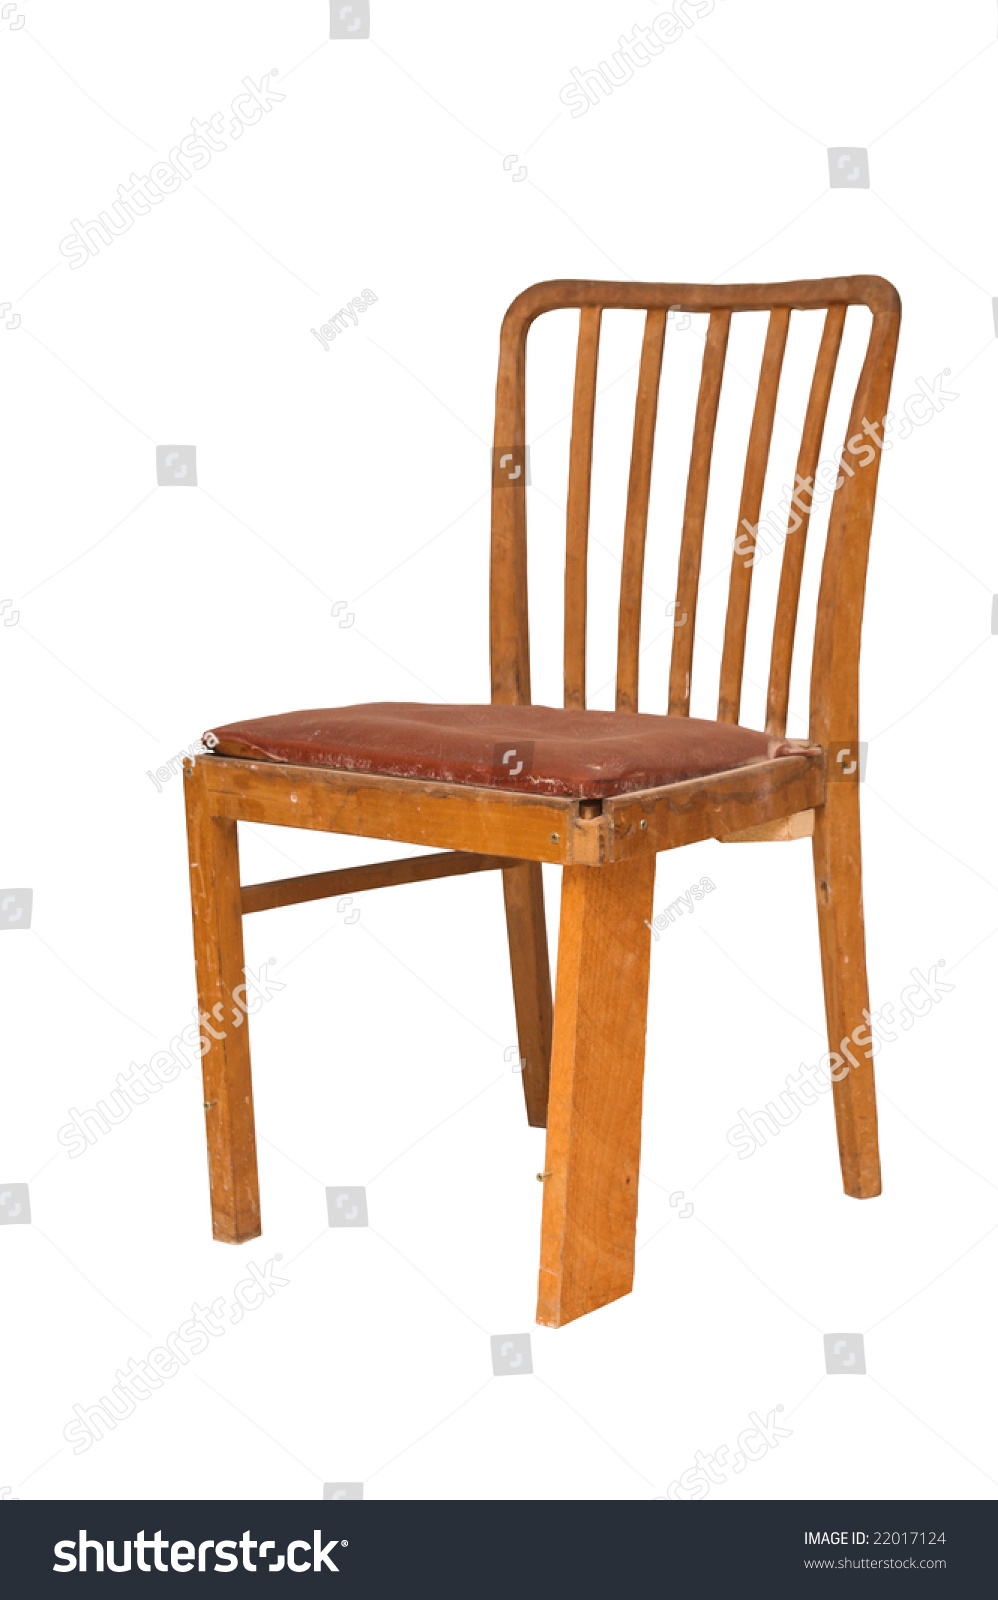 An Old Broken Wooden Chair Is On White